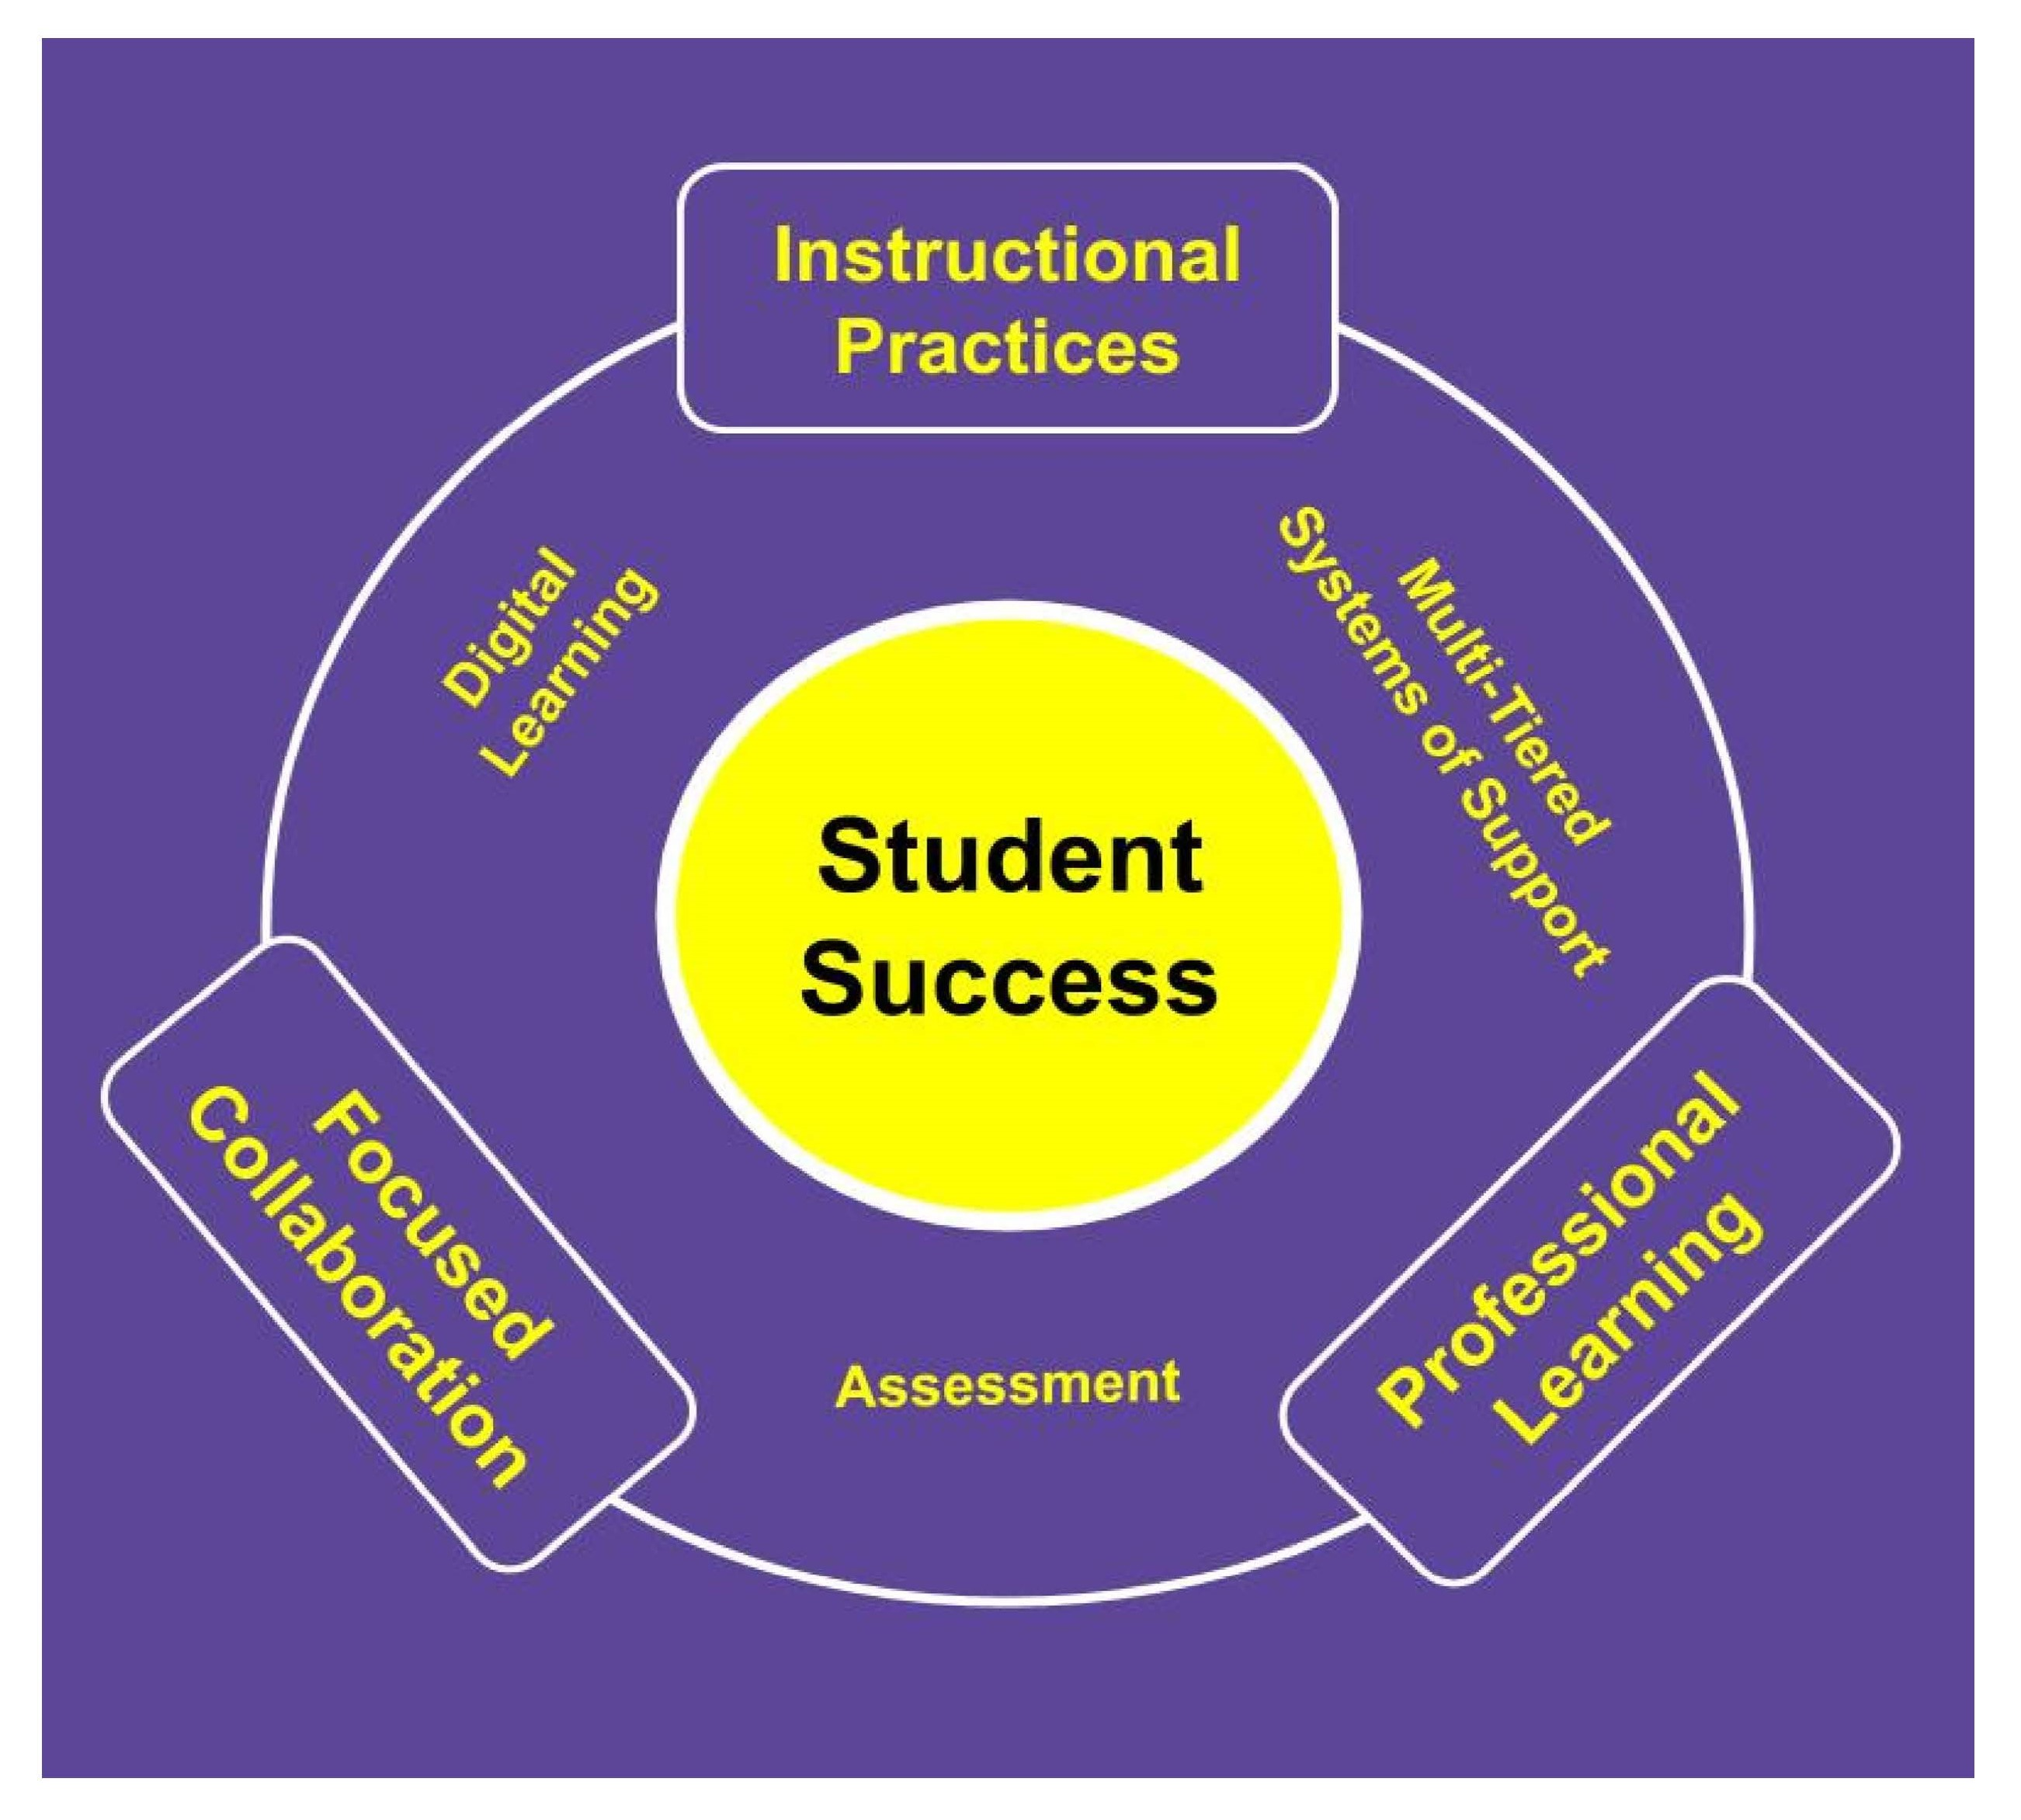 Student Success Framework Graphic